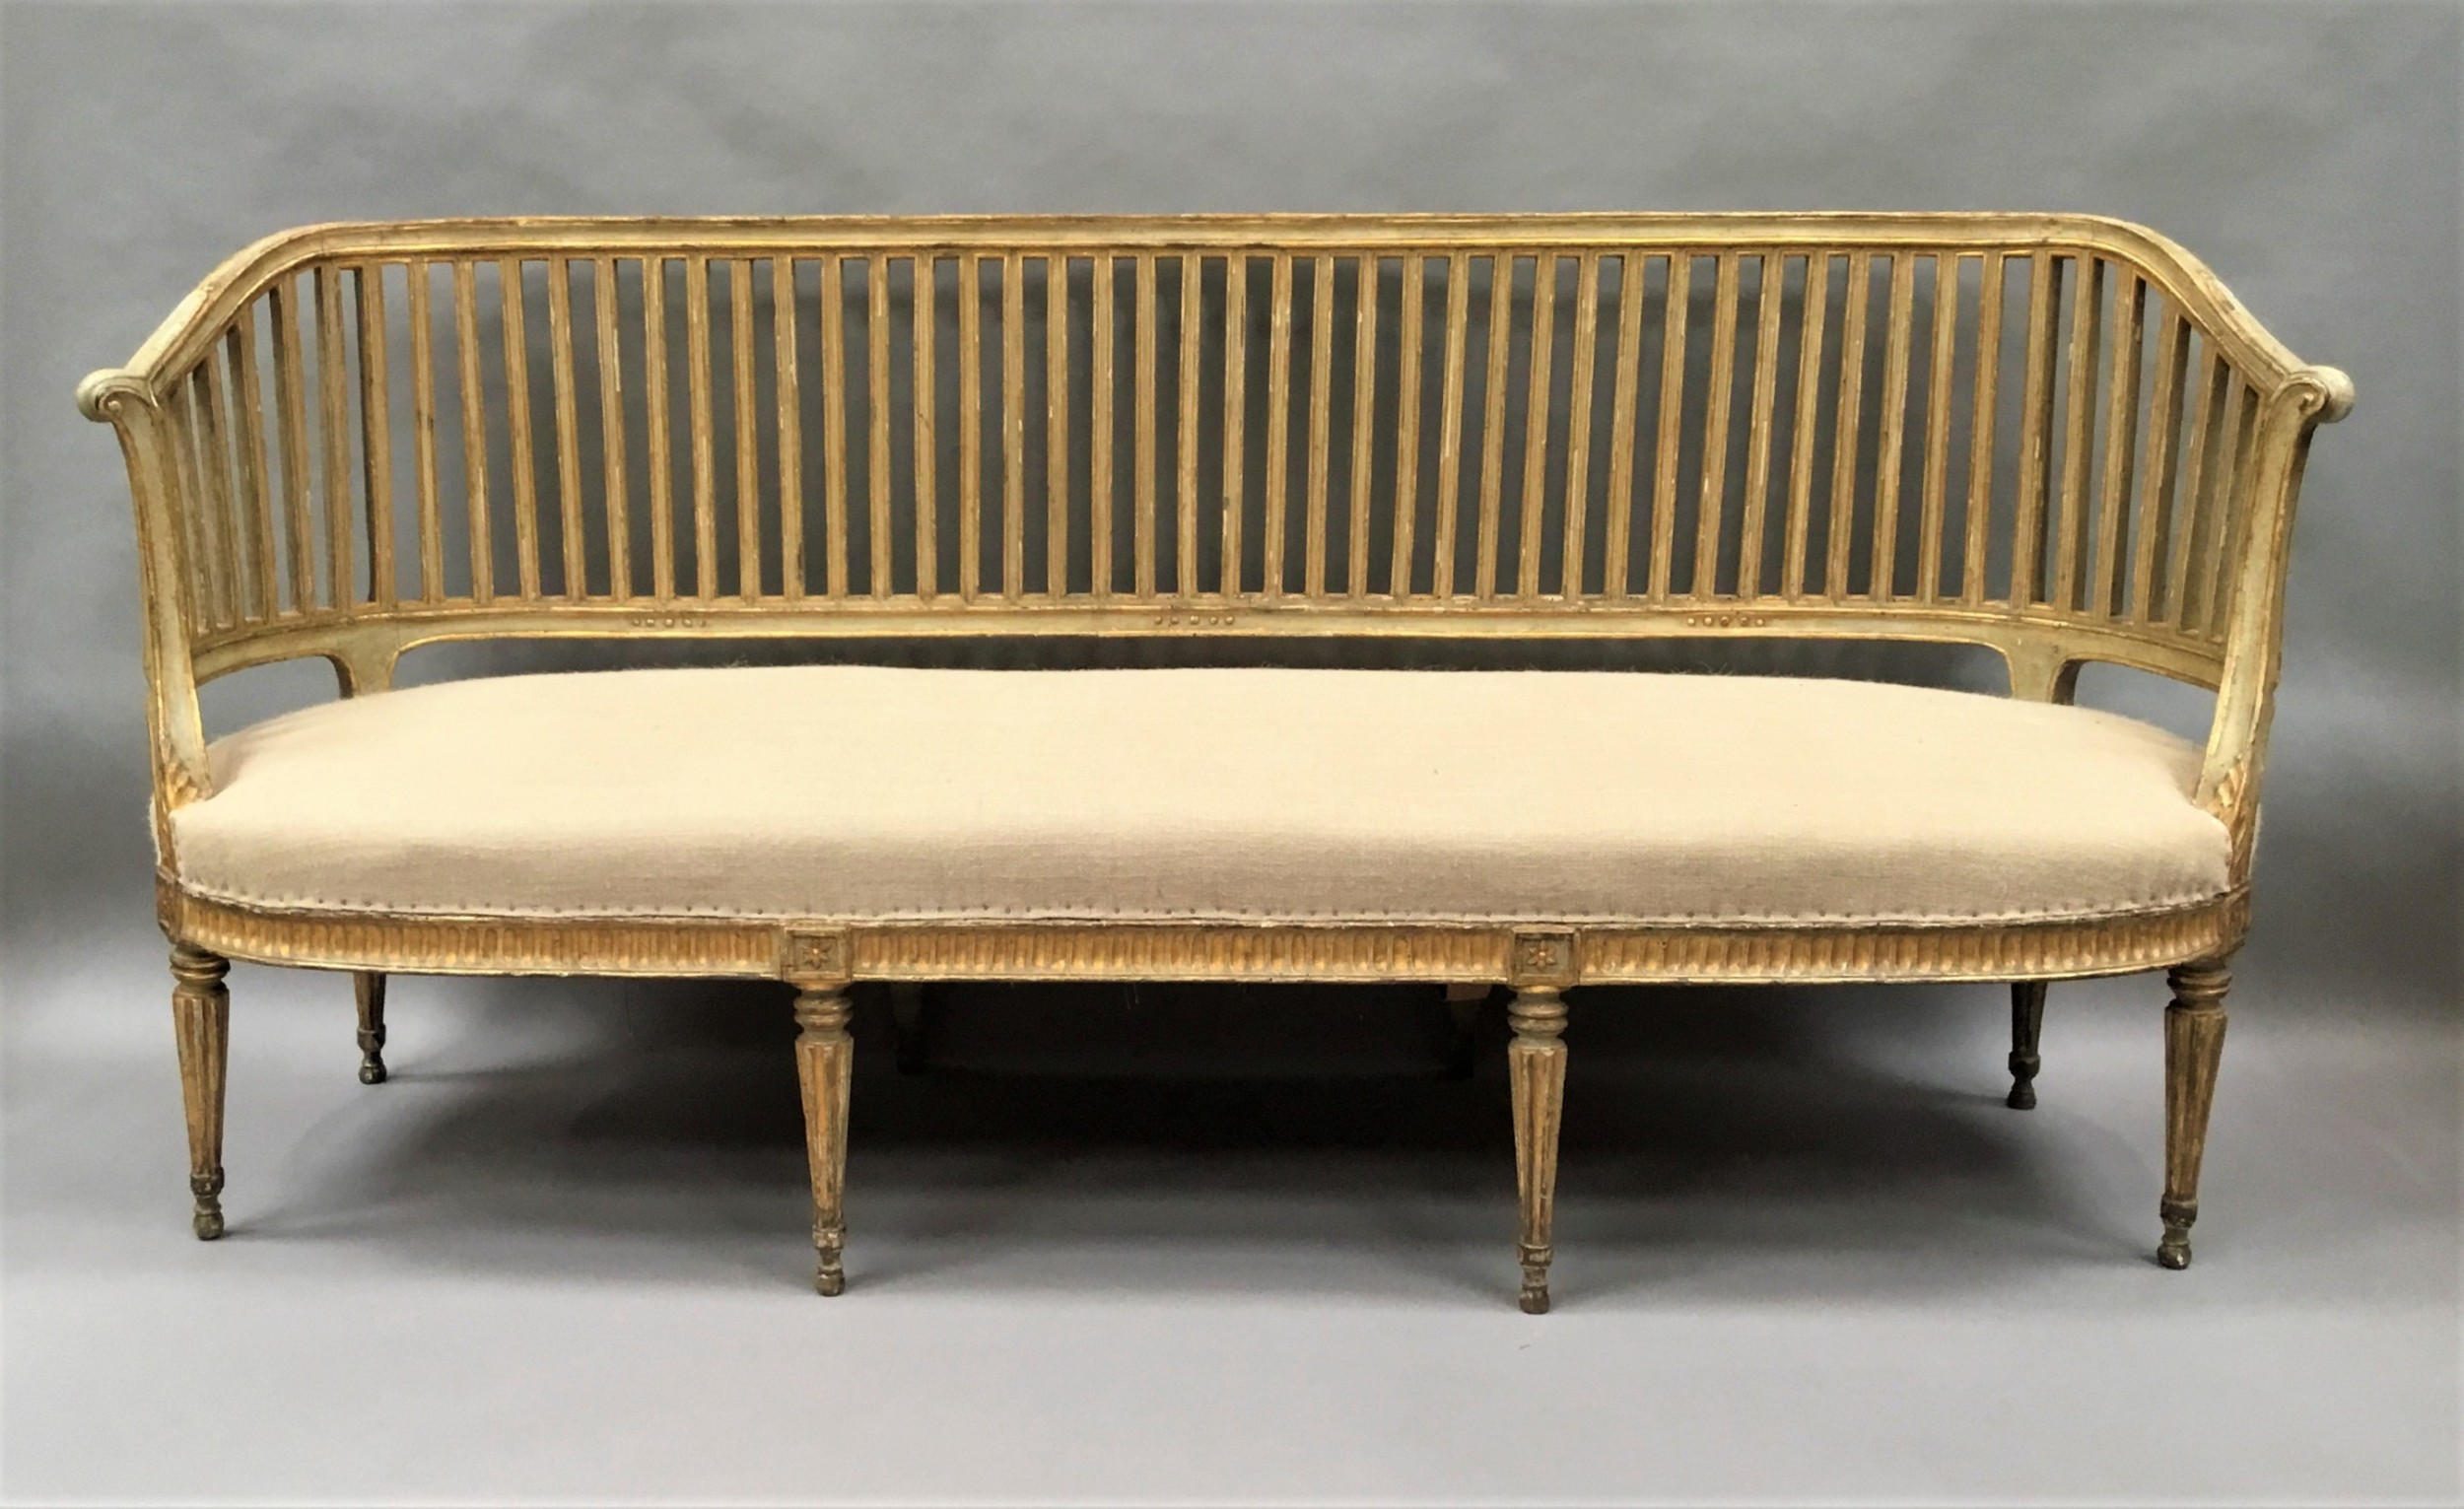 c18th italian neoclassical settee with original paint and parcel gilt